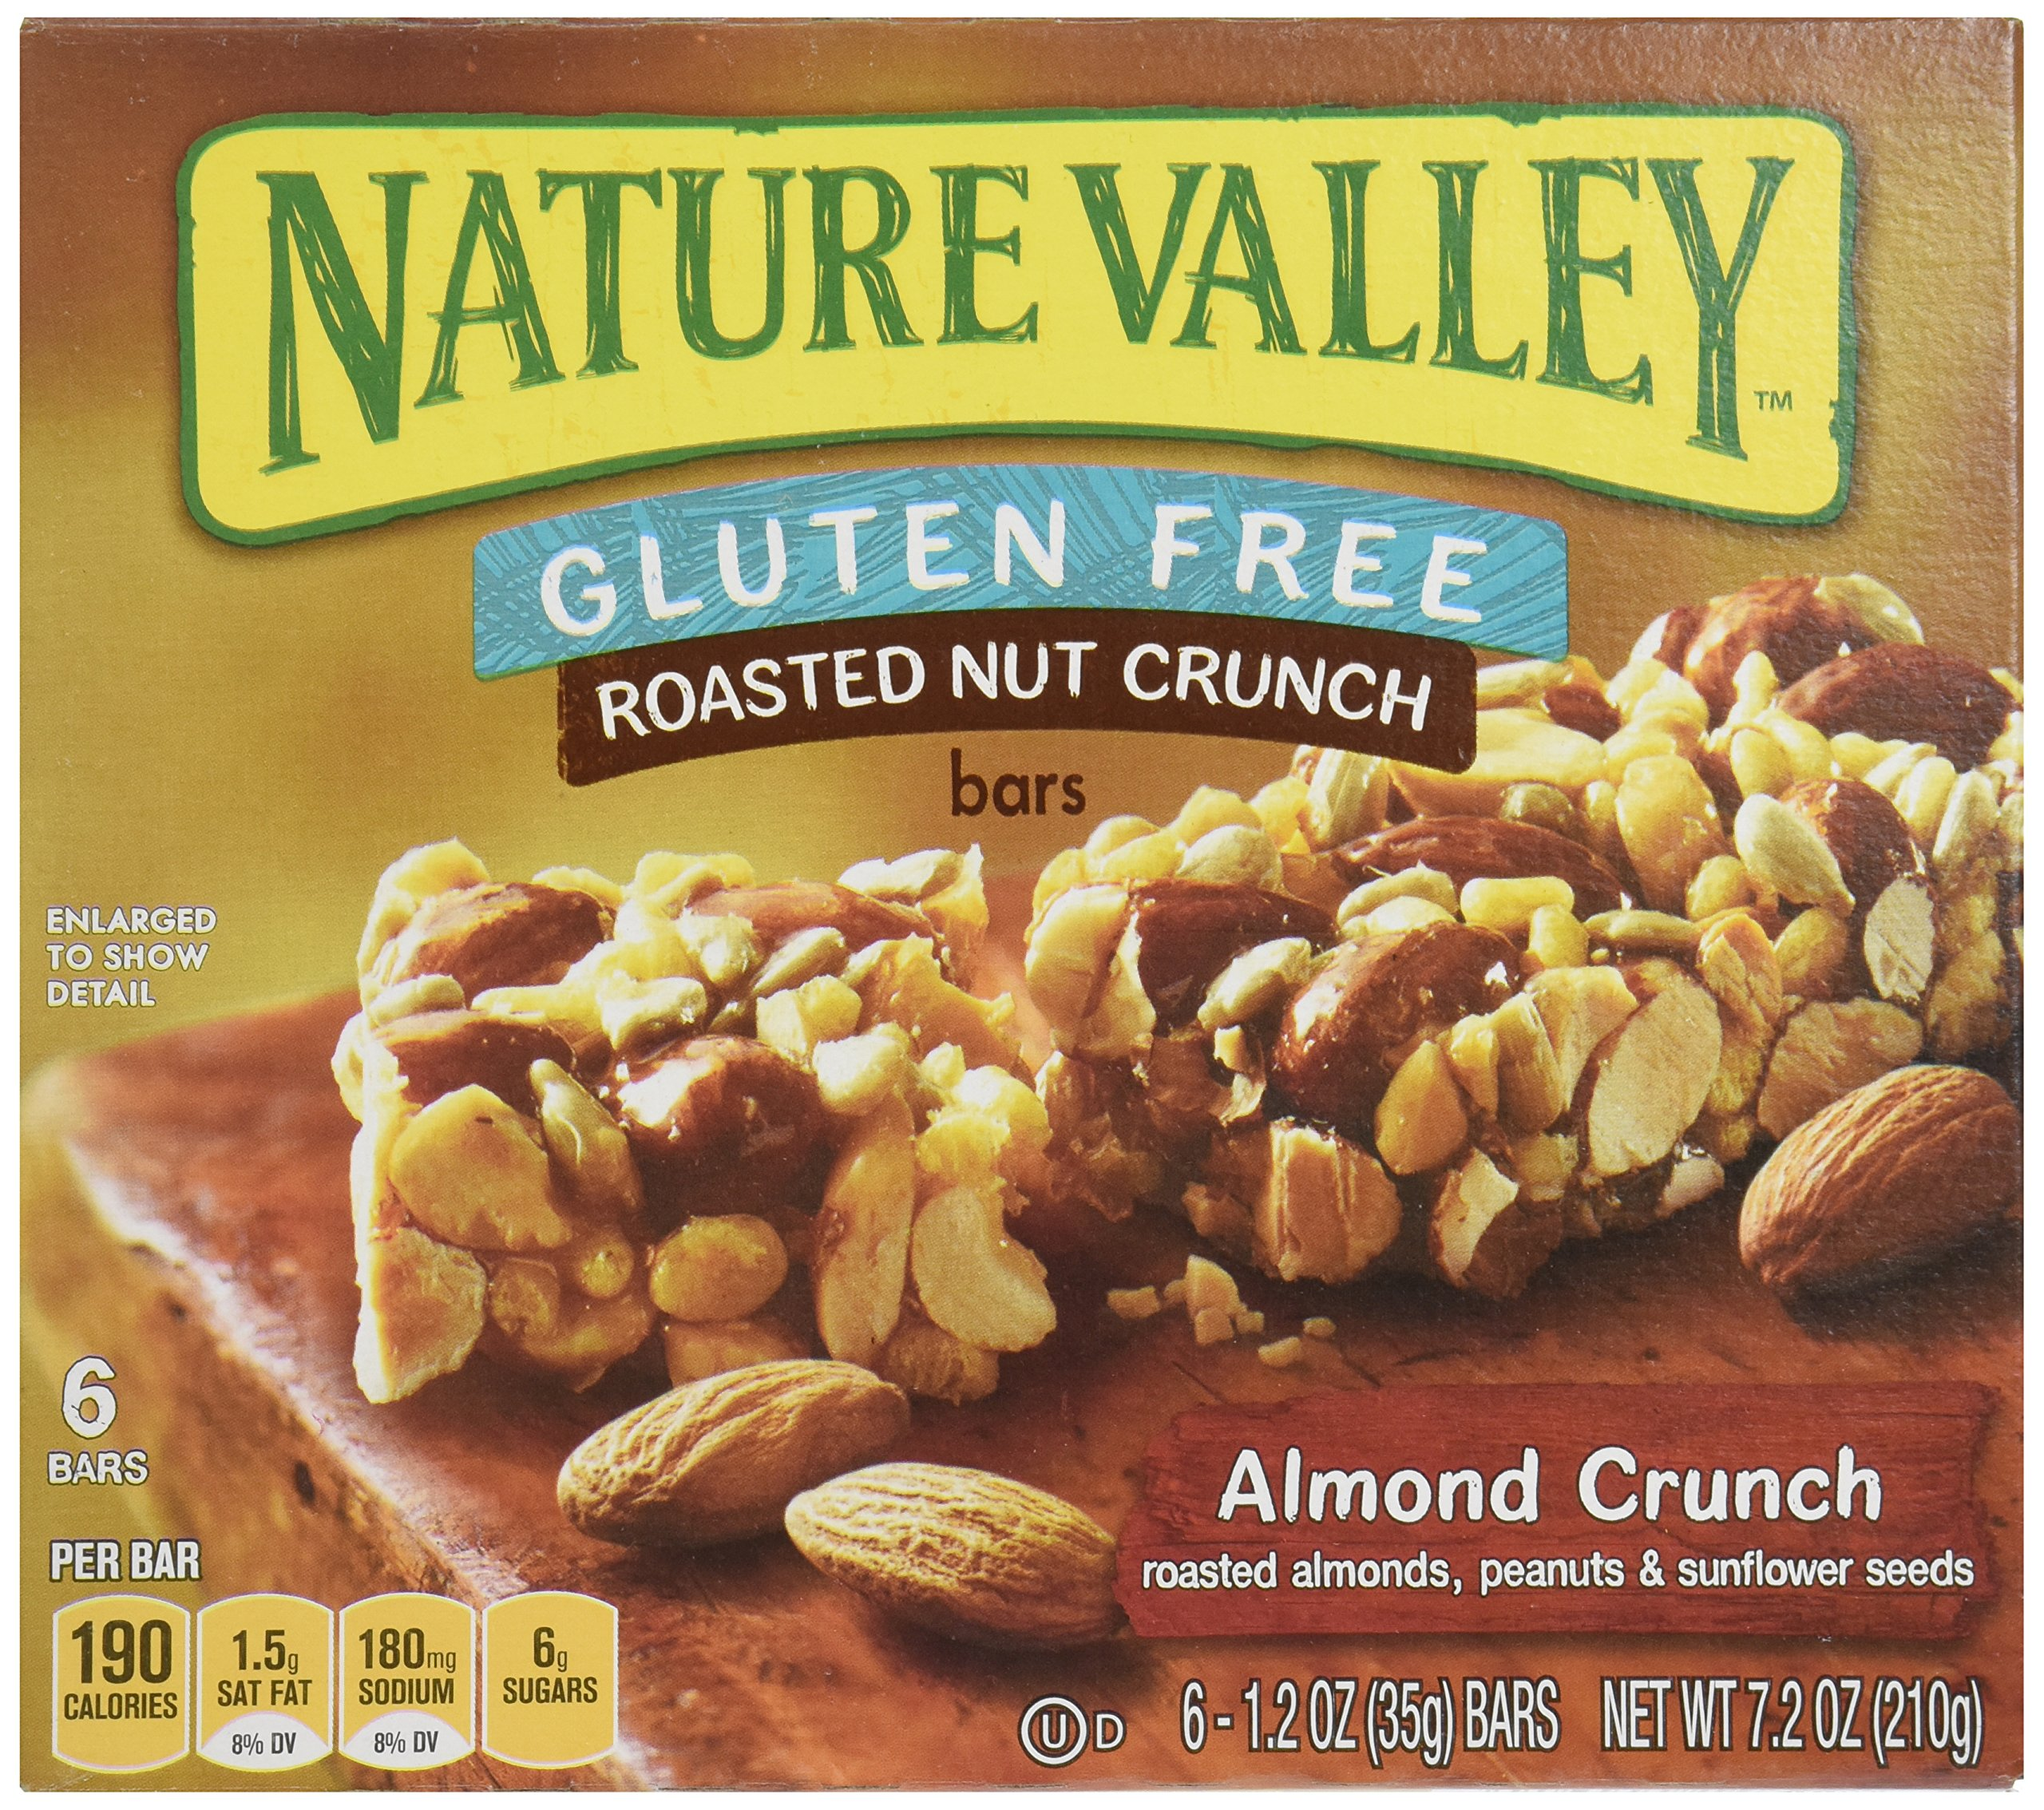 Nature Valley Roasted Nut Almond Crunch, 6 ct, 1.2 oz each